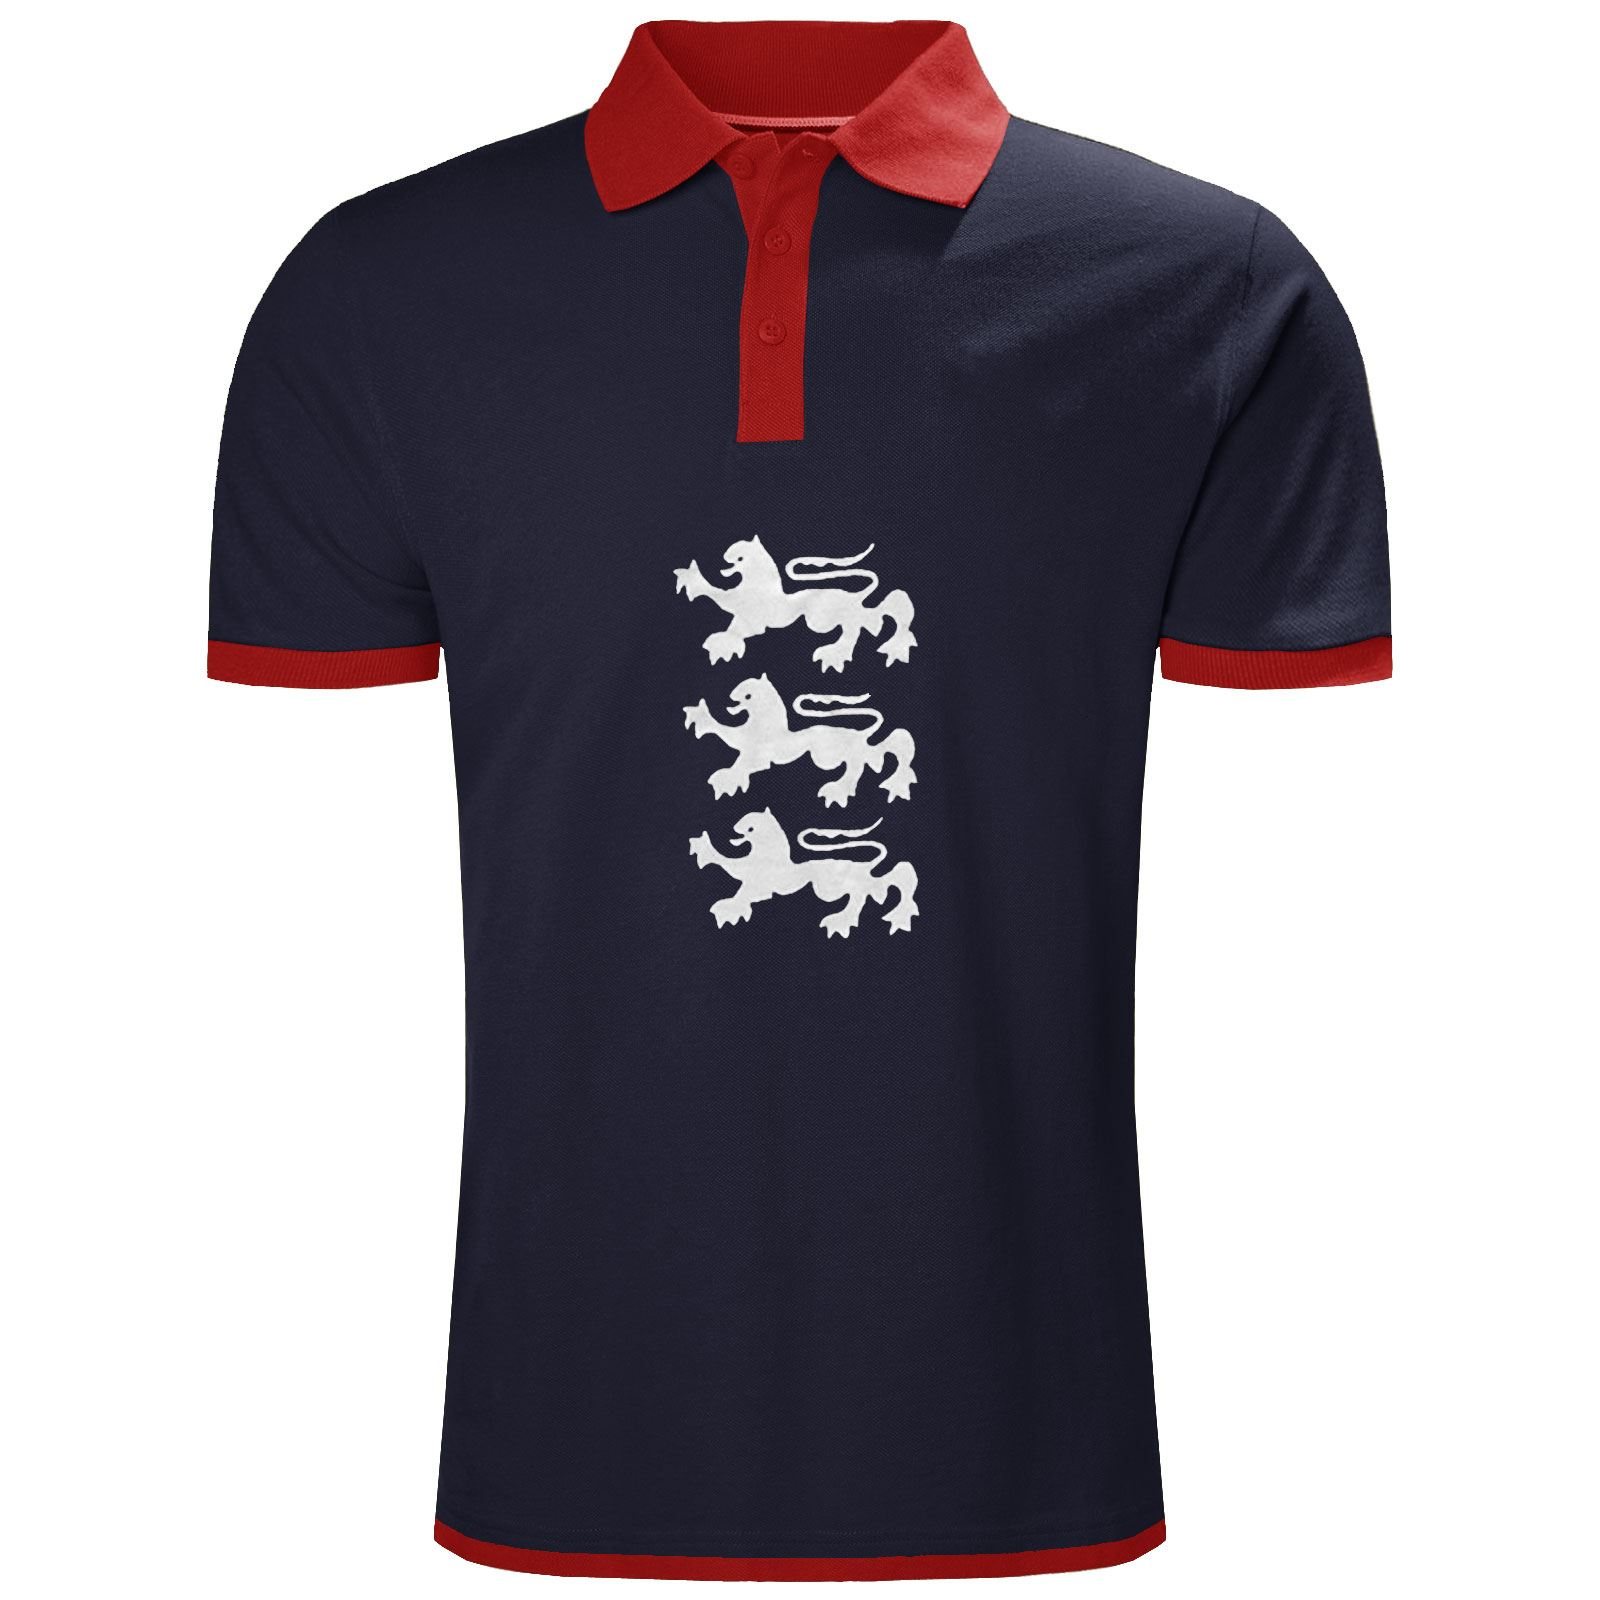 MENS-ENGLAND-TOP-POLO-T-SHIRTS-SHORT-SLEEVE-SPORTS-CRICKET-FOOTBALL-GOLF-TEES thumbnail 5